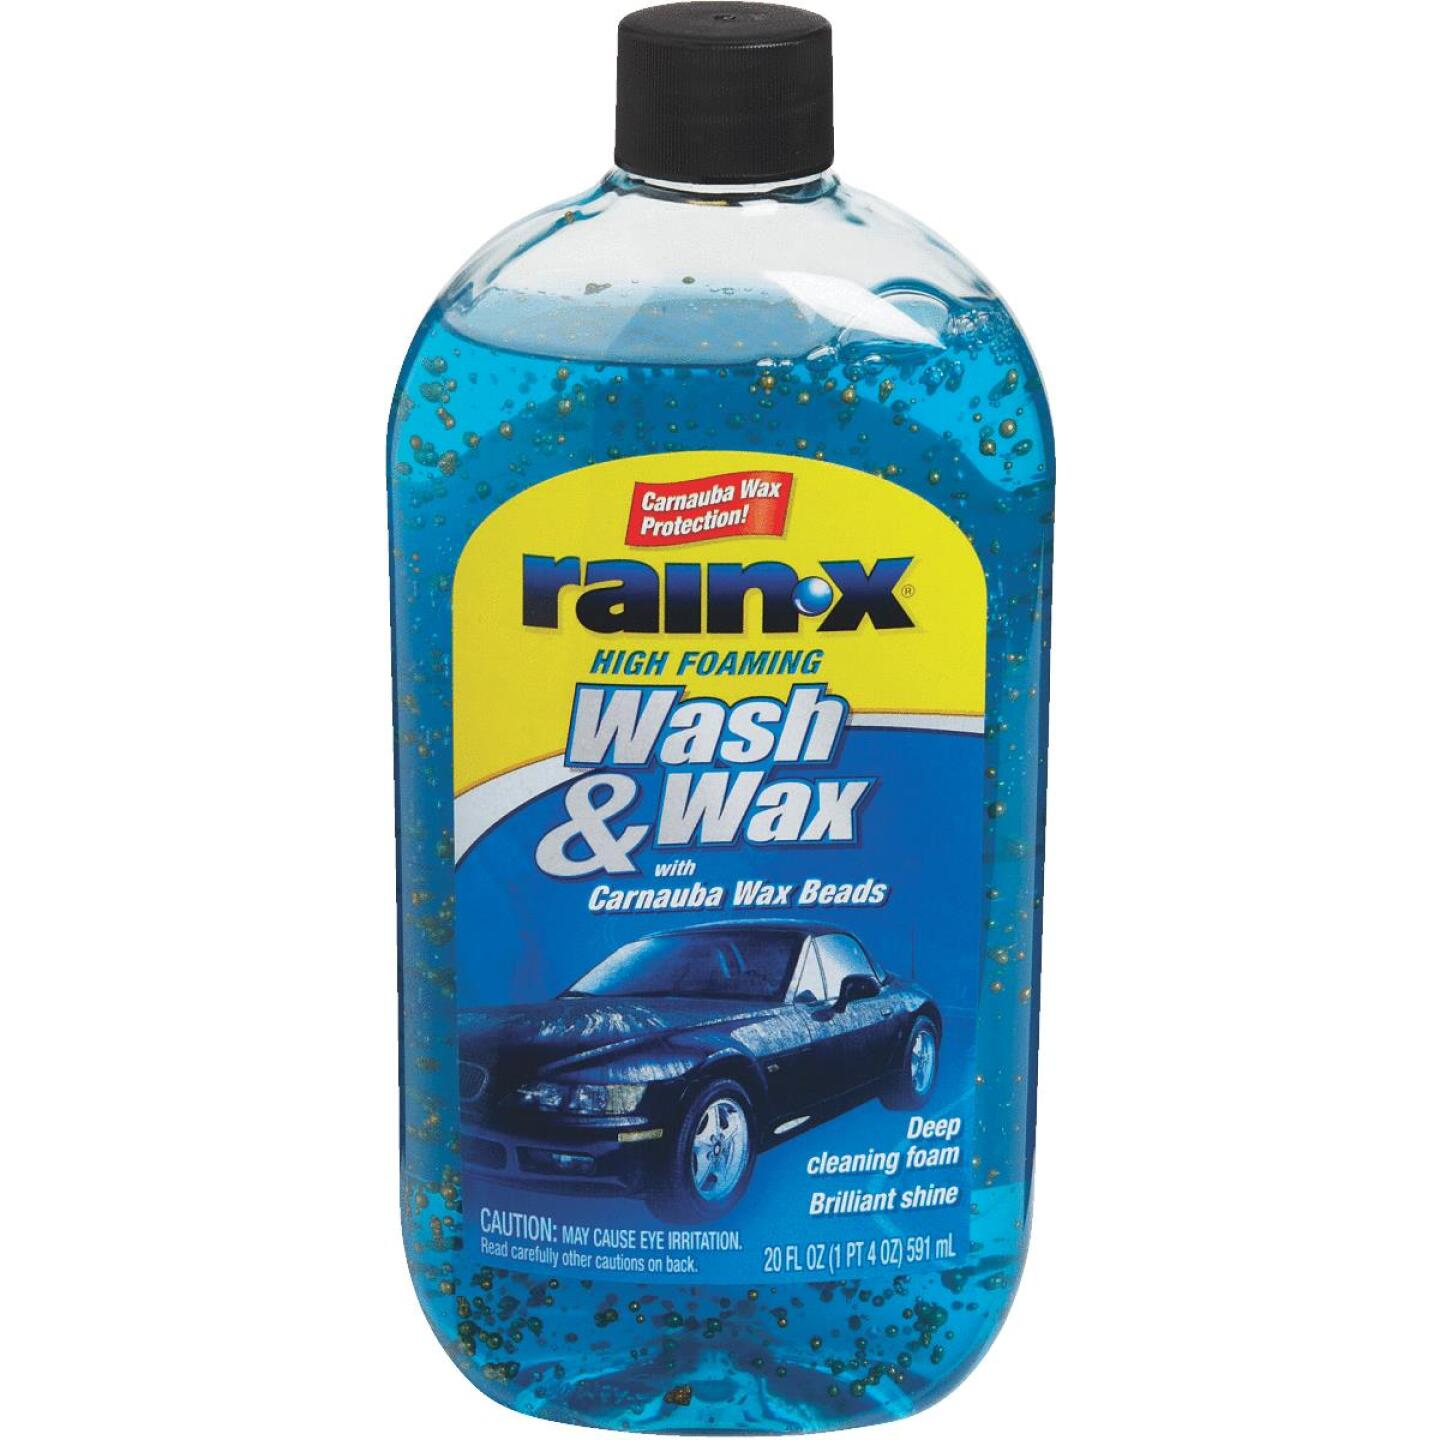 RAIN-X 20 oz Foam with Carnauba Wax Beads Car Wash Image 1